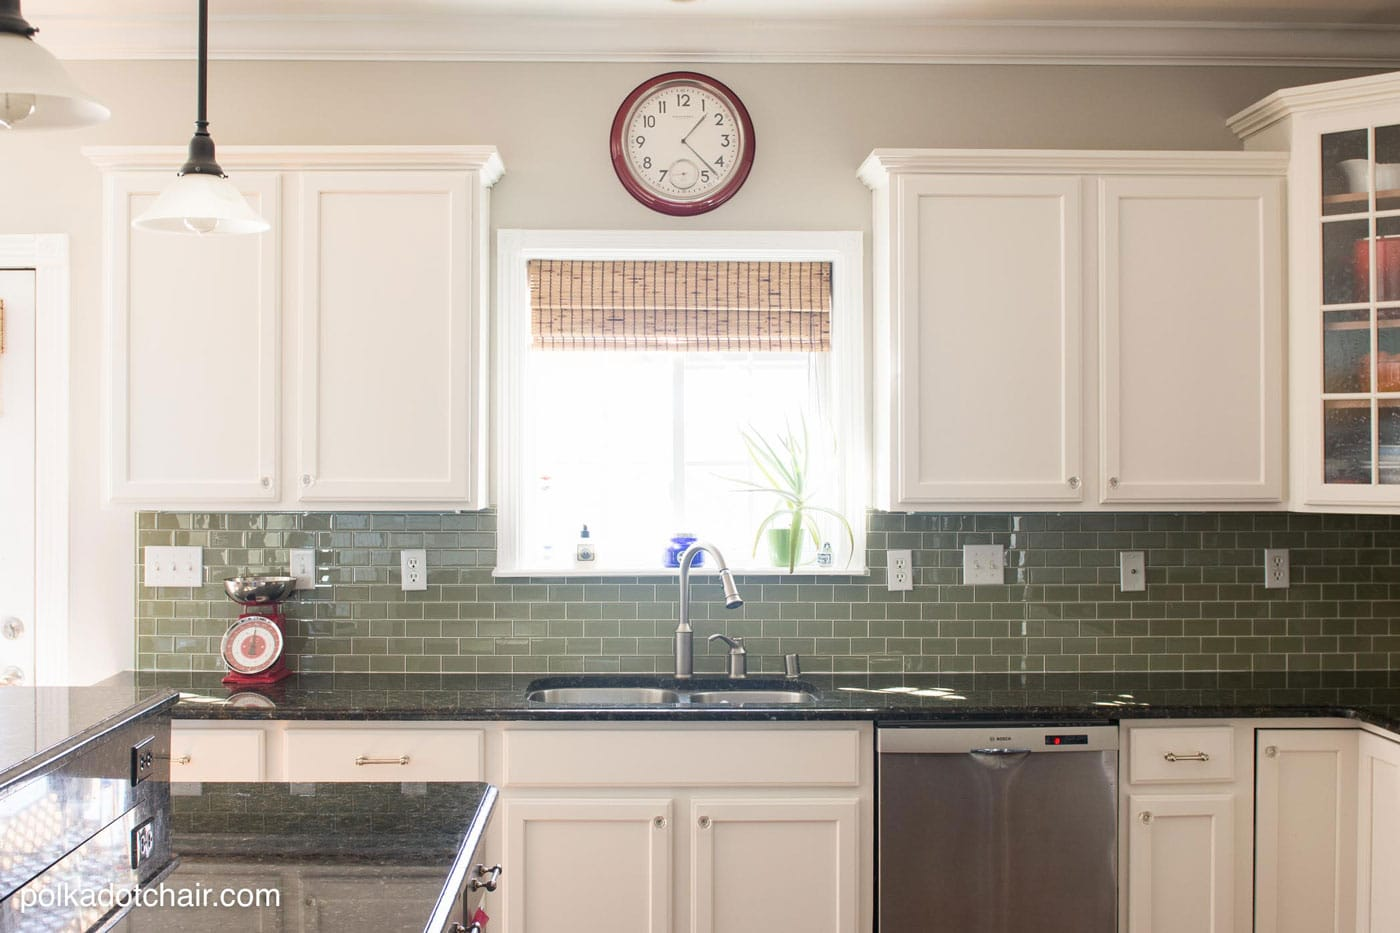 painted kitchen cabinet ideas kitchen makeover reveal painting kitchen cabinets white Before and After Photos of a Kitchen that had it s Cabinets Painted White lots of